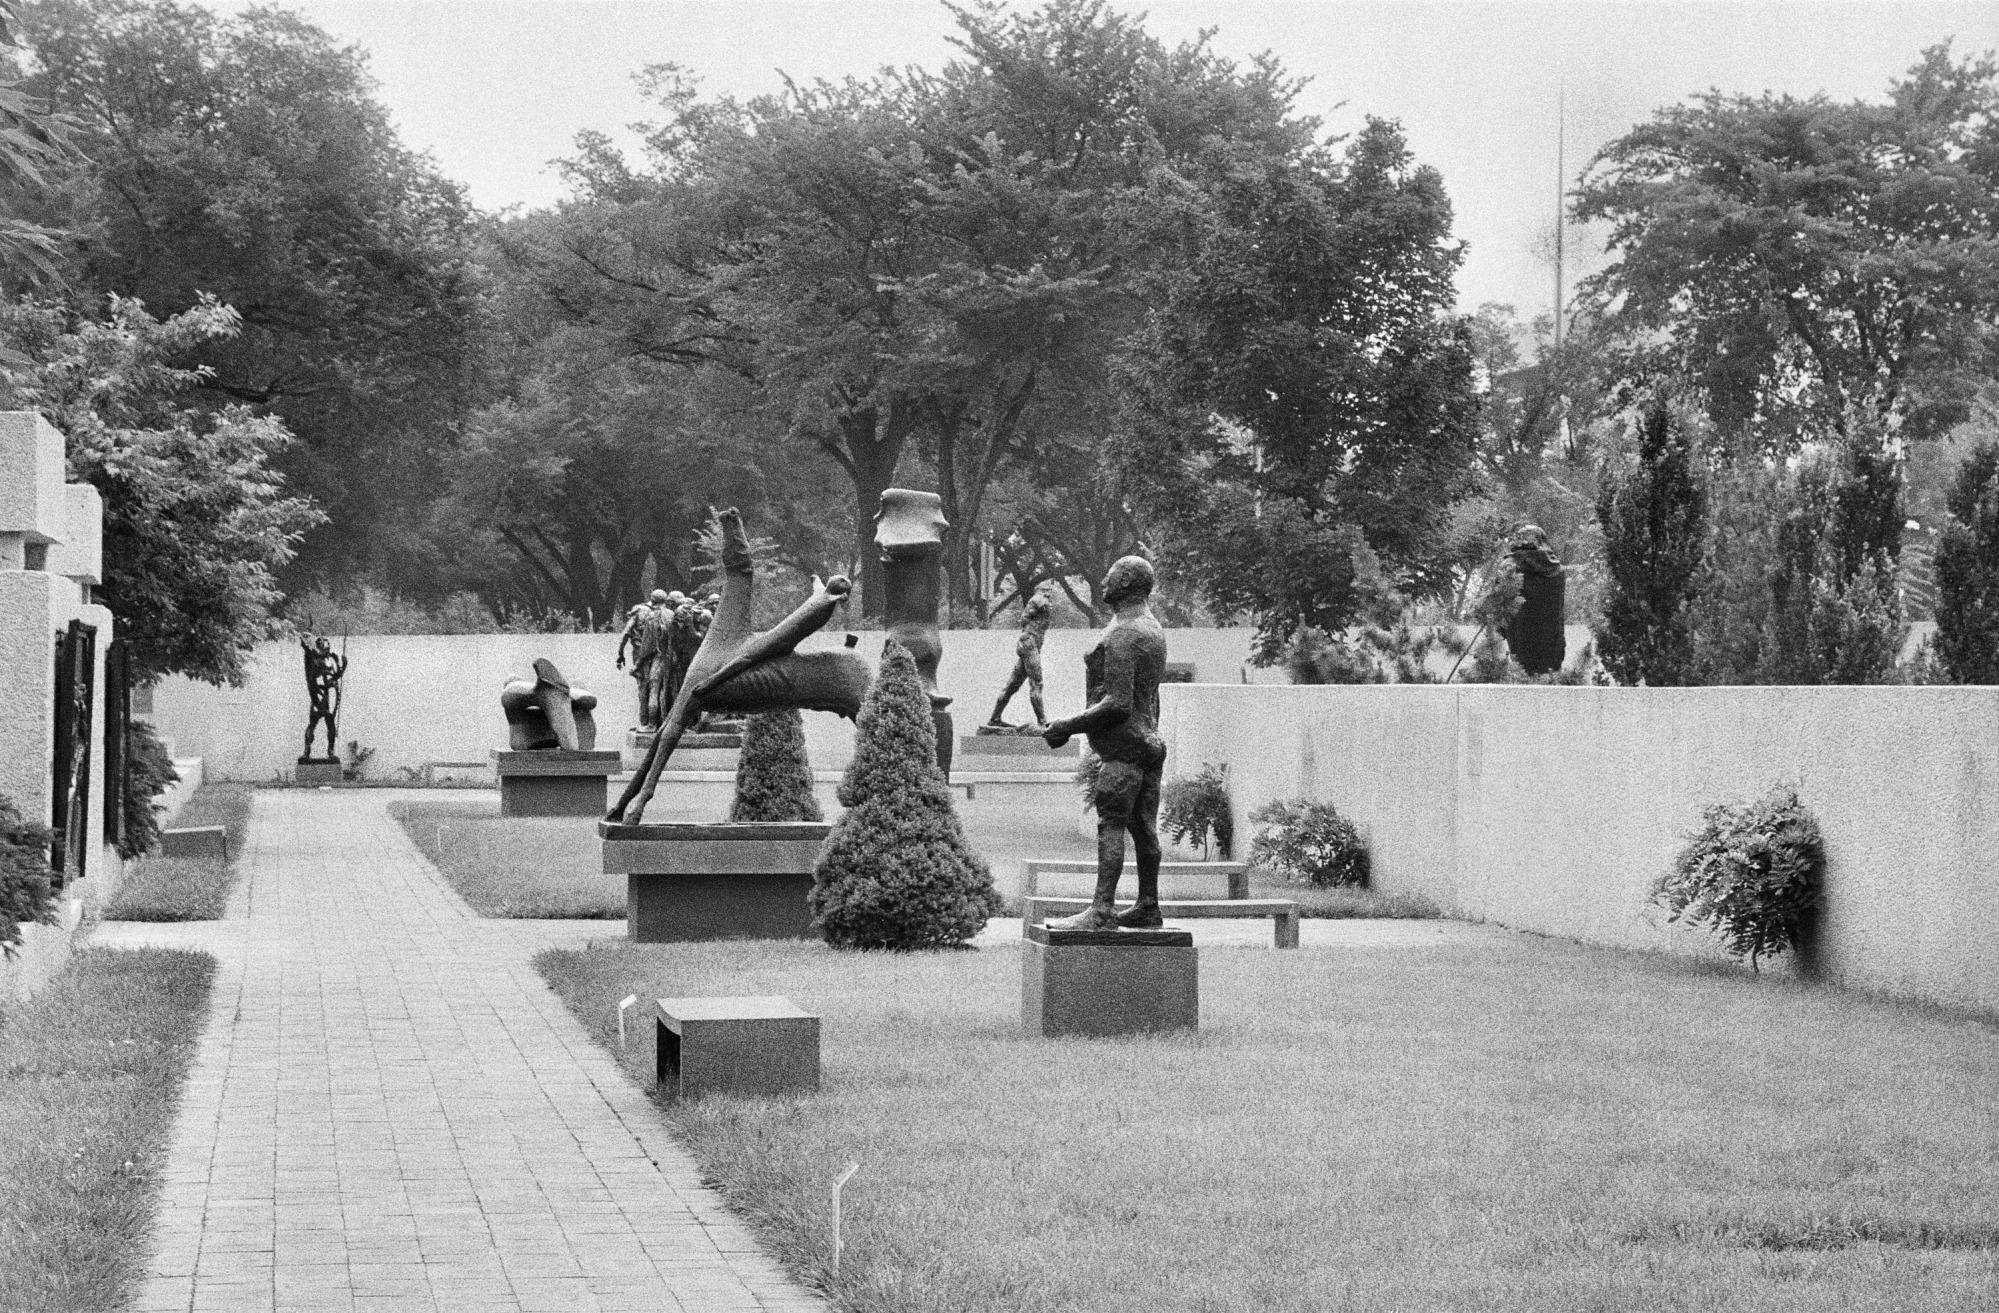 Hirshhorn Sculpture Garden, by Tinsley, Jeff, 1985, Smithsonian Archives - History Div, 85-9180-10.